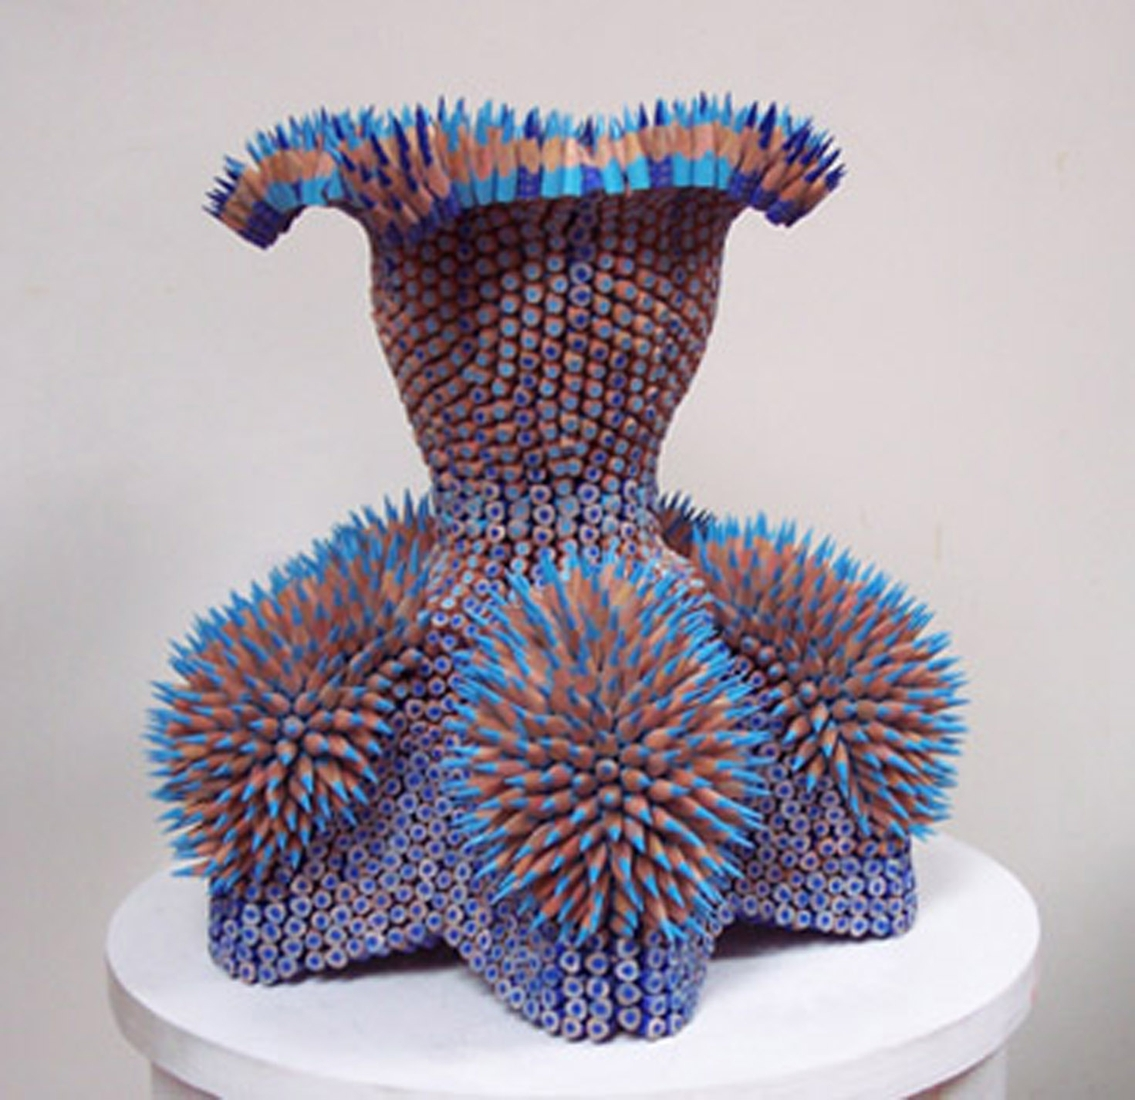 08-Electra-Jennifer-Maestre-Creature-Pencil-Sculptures-with-a-Peyote-Stitch-www-designstack-co